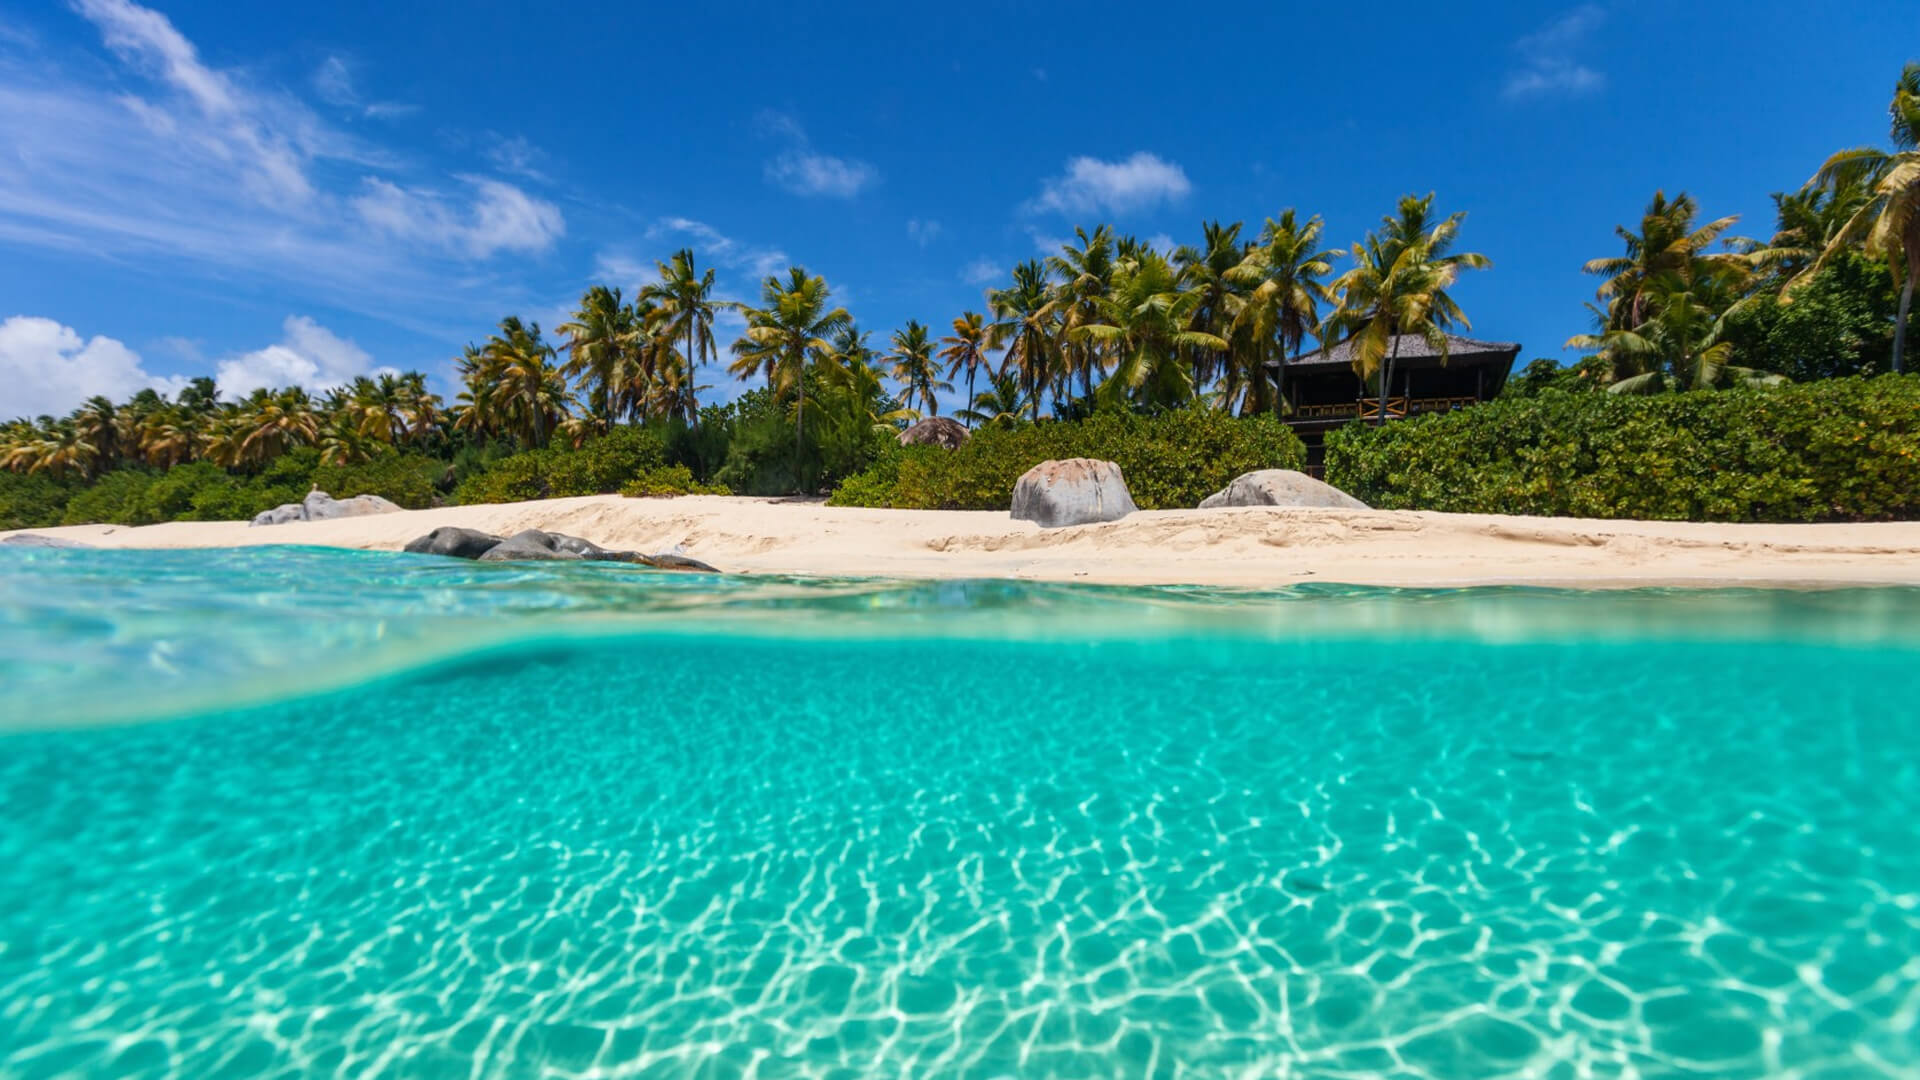 A selection of some of the idyllic destinations you can explore with Tropicalboat, such as the crystal waters of the Bahamas pictured above